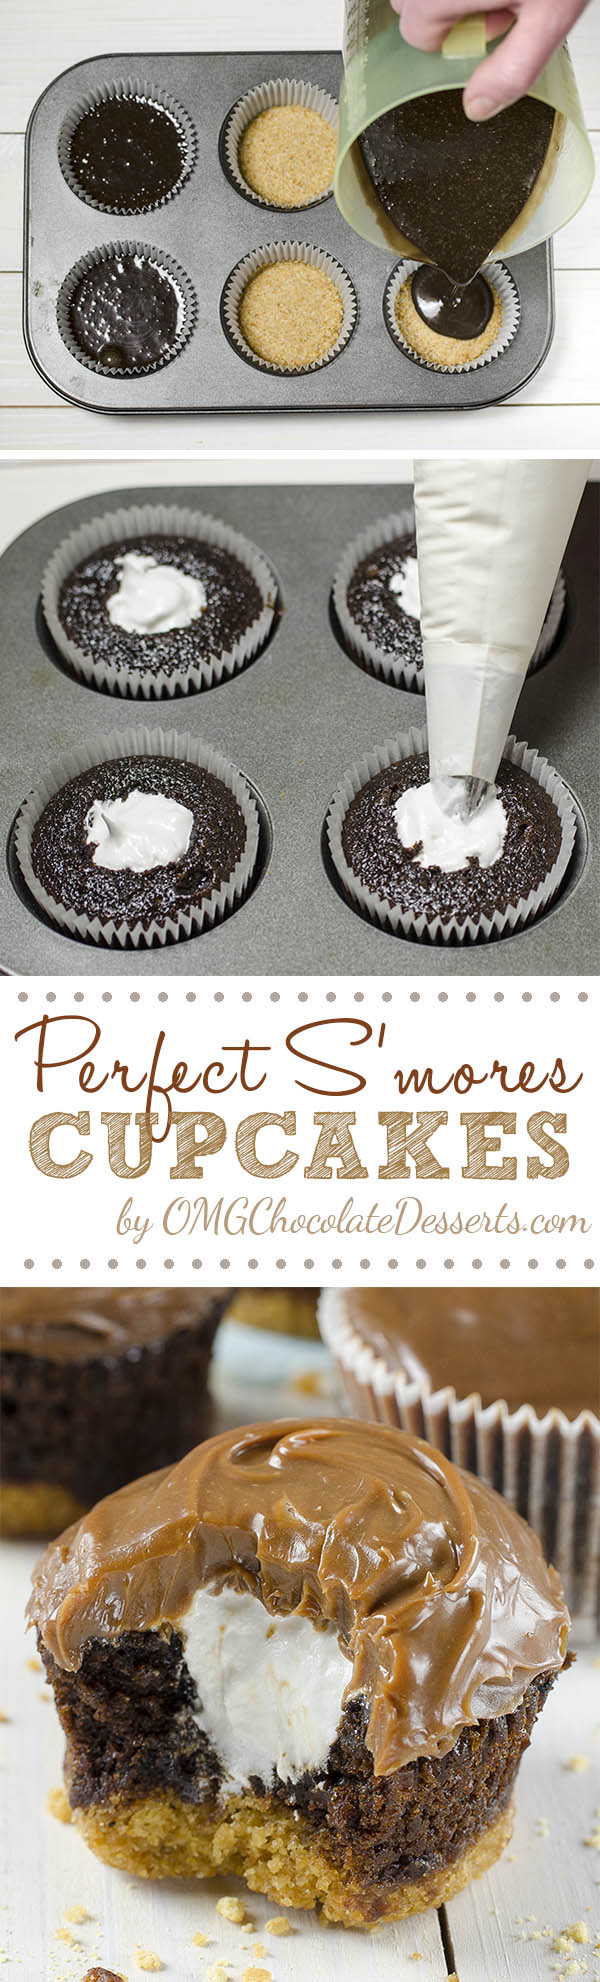 Perfect S'mores Cupcakes - delicious chocolate cupcakes with a  graham cracker crust, filled with light and fluffy marshmallow filling and topped with milk chocolate ganache.